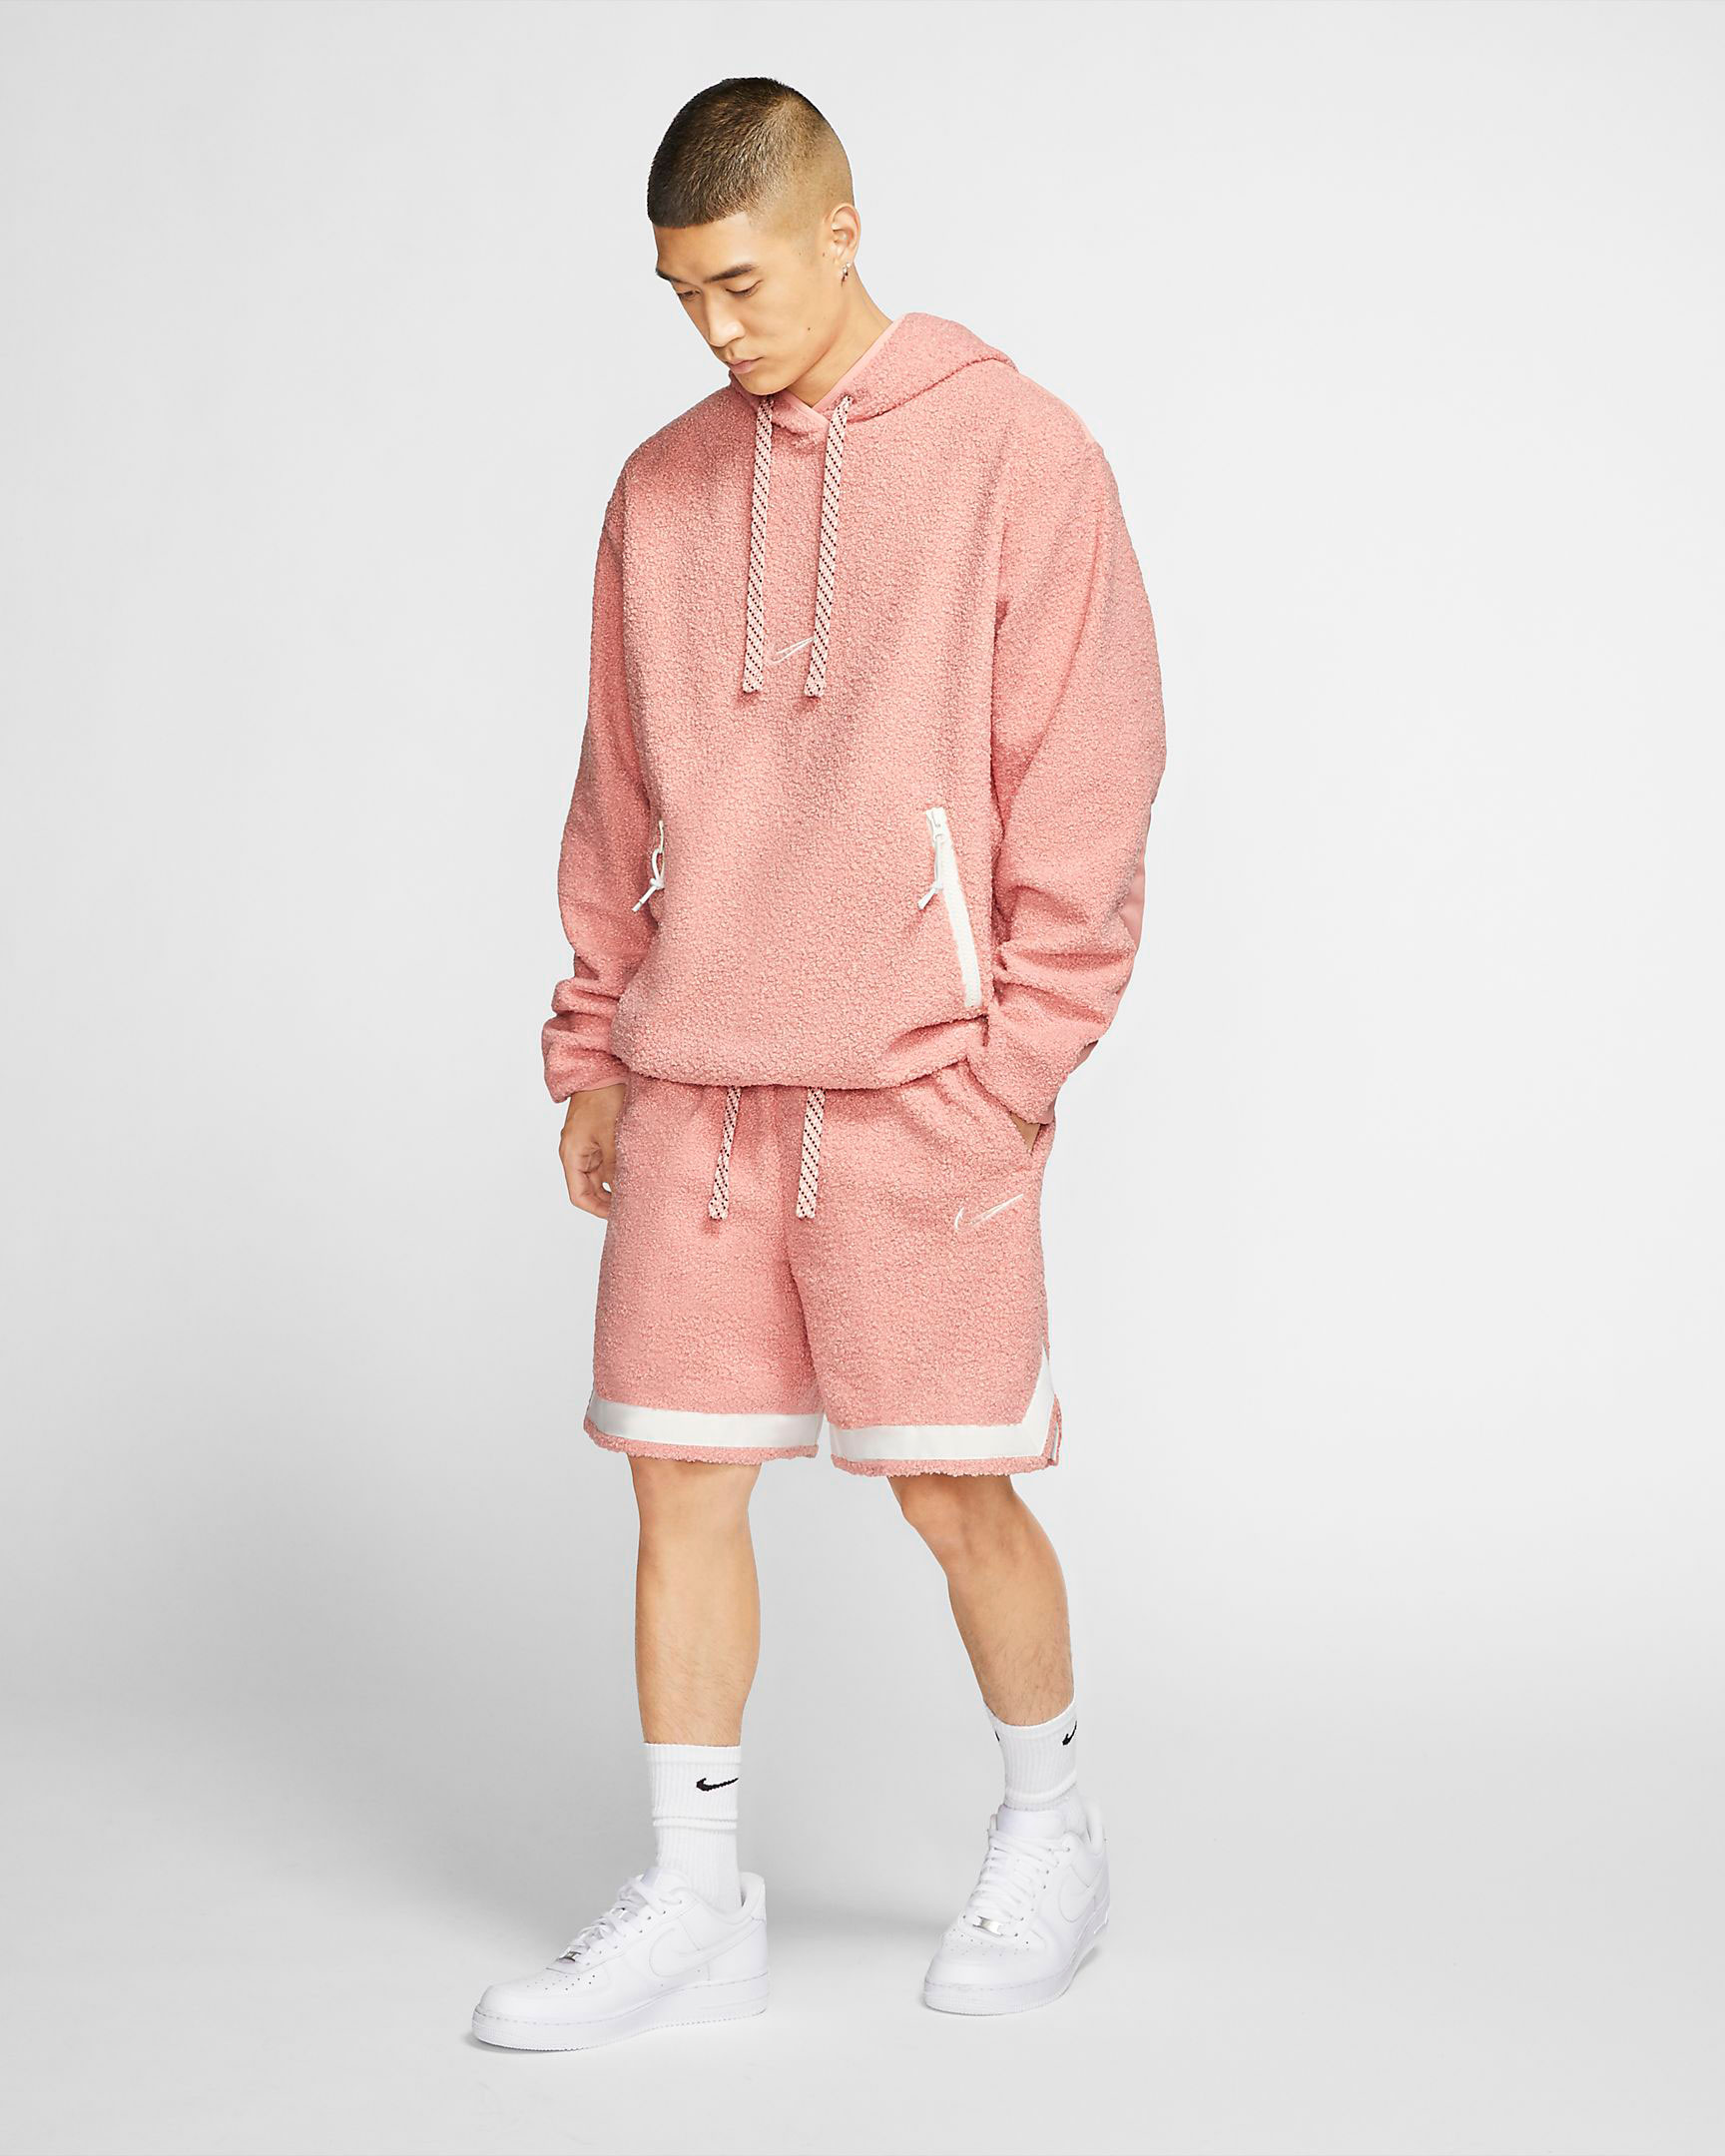 nike-pink-cozy-basketball-hoodie-and-shorts